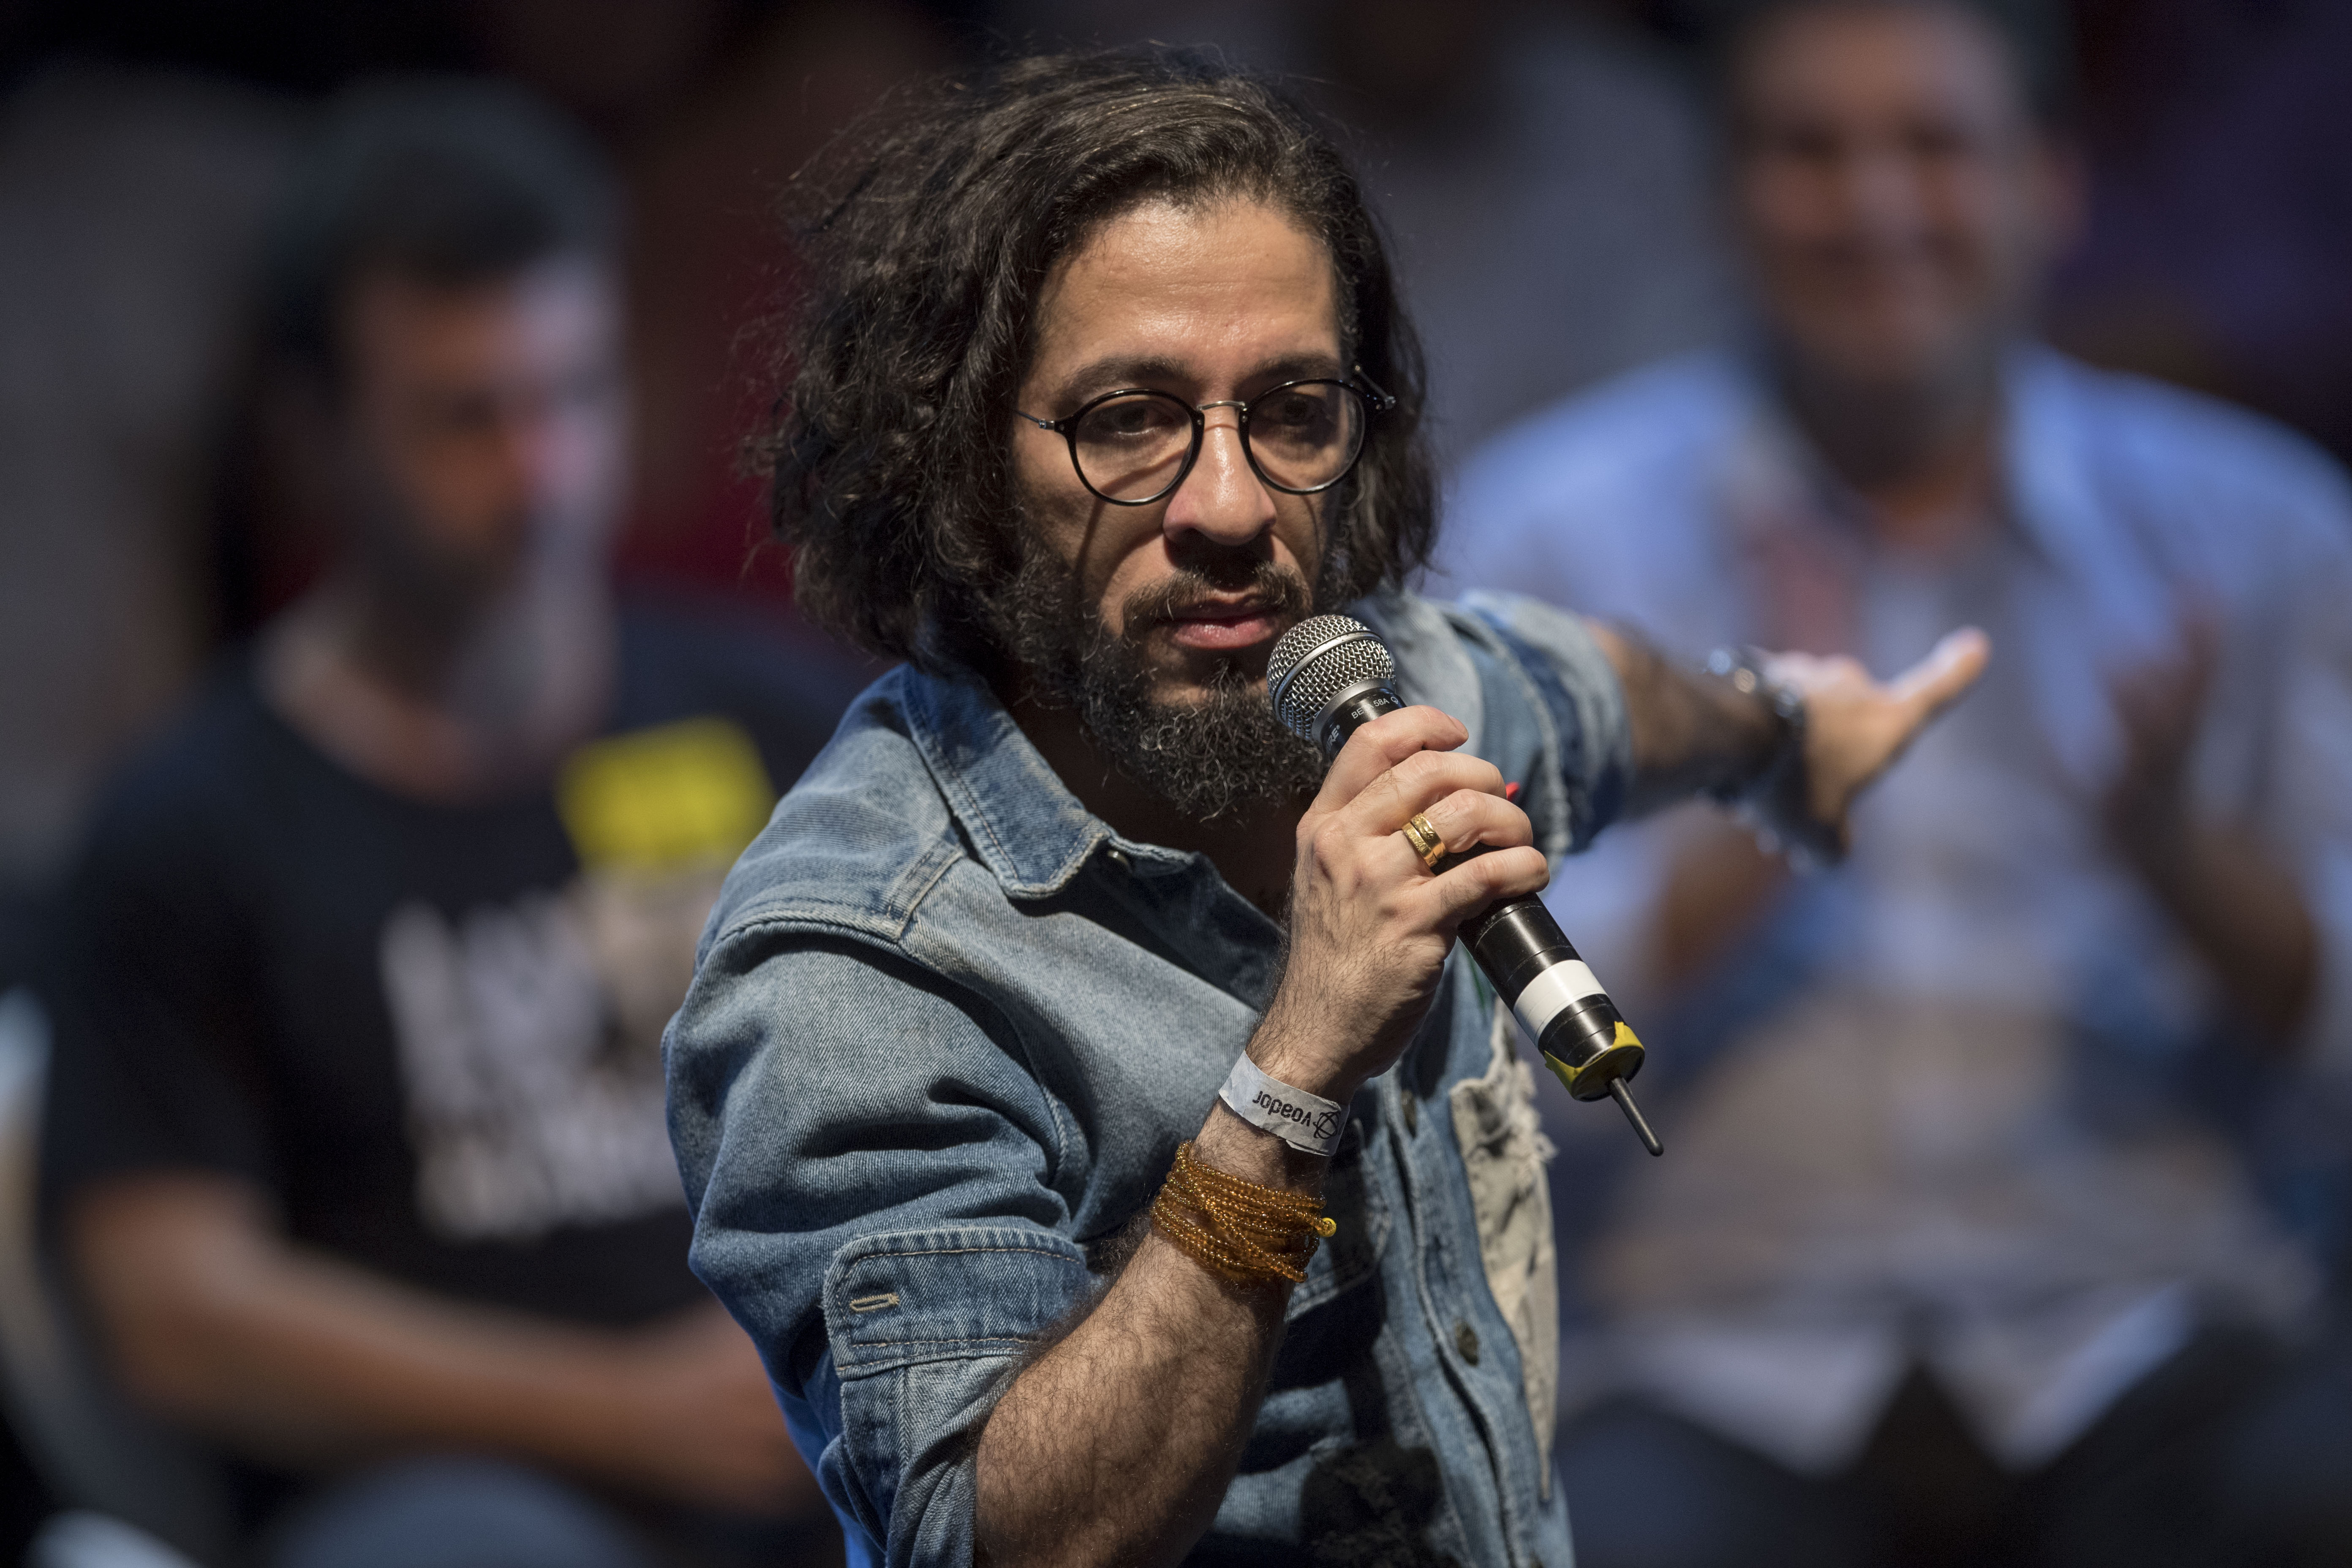 Jean Wyllys, Rio de Janeiro federal deputy for the Socialism and Liberty Party (PSOL) speaks during a rally of Brazilian leftist parties at Circo Voador in Rio de Janeiro, Brazil, on April 02, 2018